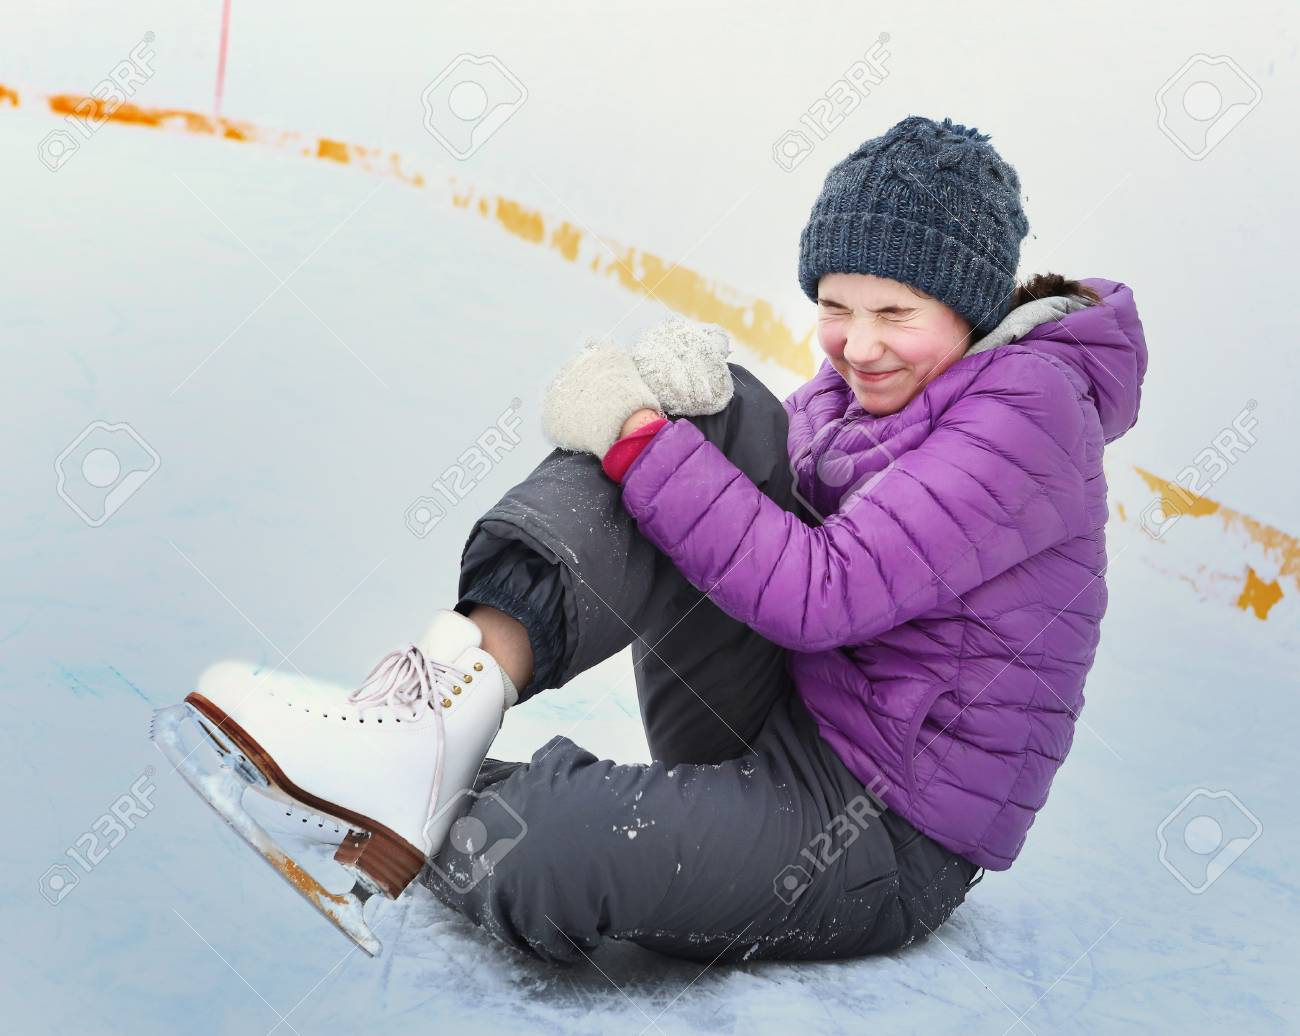 Stock Photo - teen skater girl in down jacket and knitted blue hat fall  down on skating rink hit her leg and grimace with pain